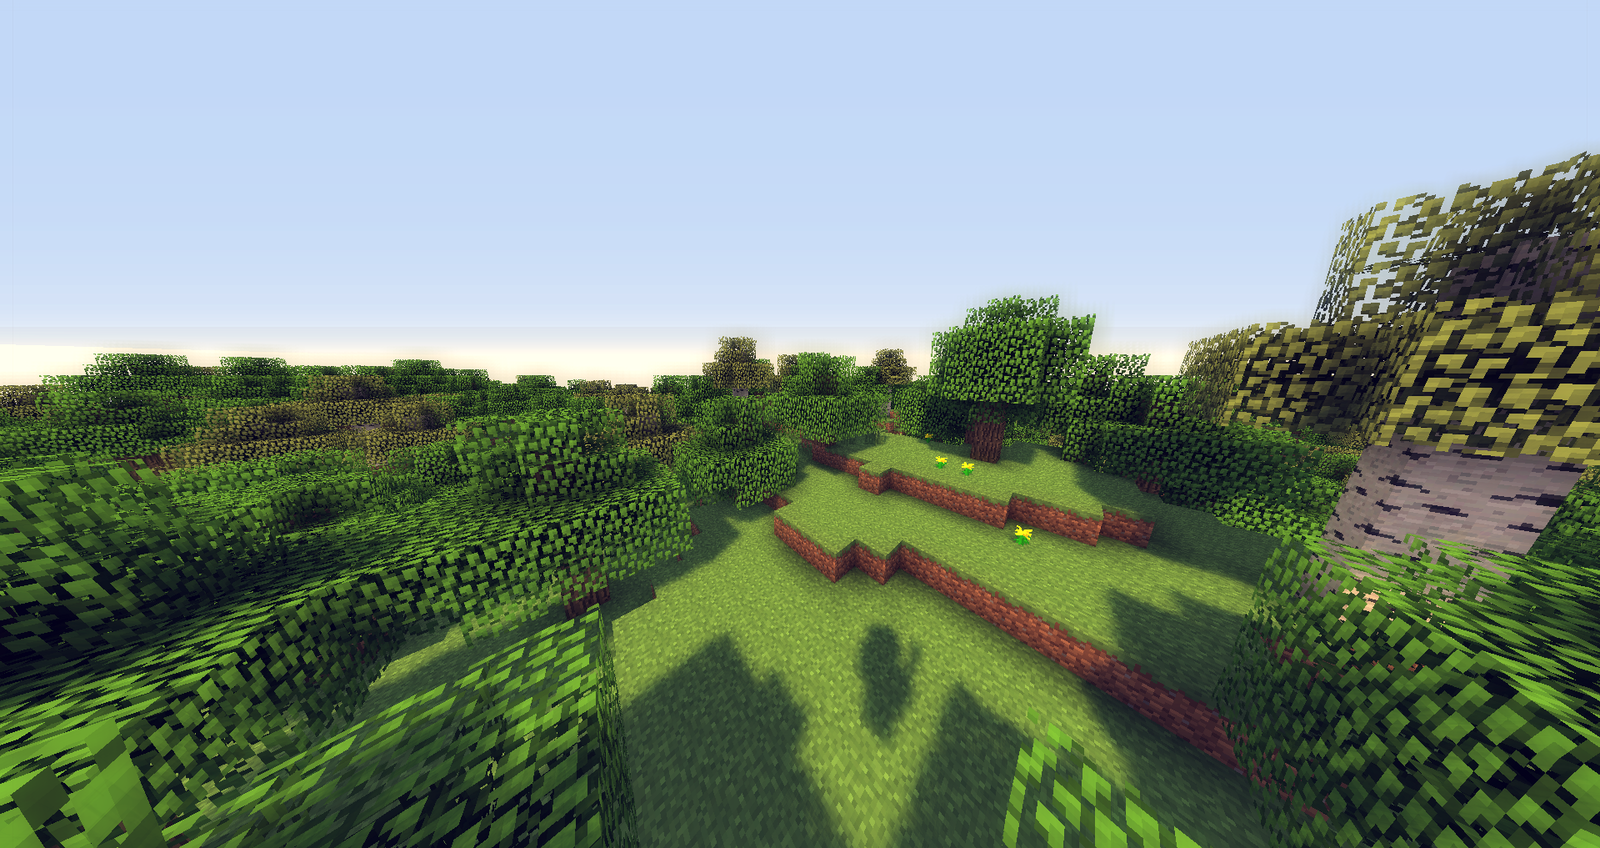 49f6e  90sy [1.9] MrMeep x3's Shaders Mod Download